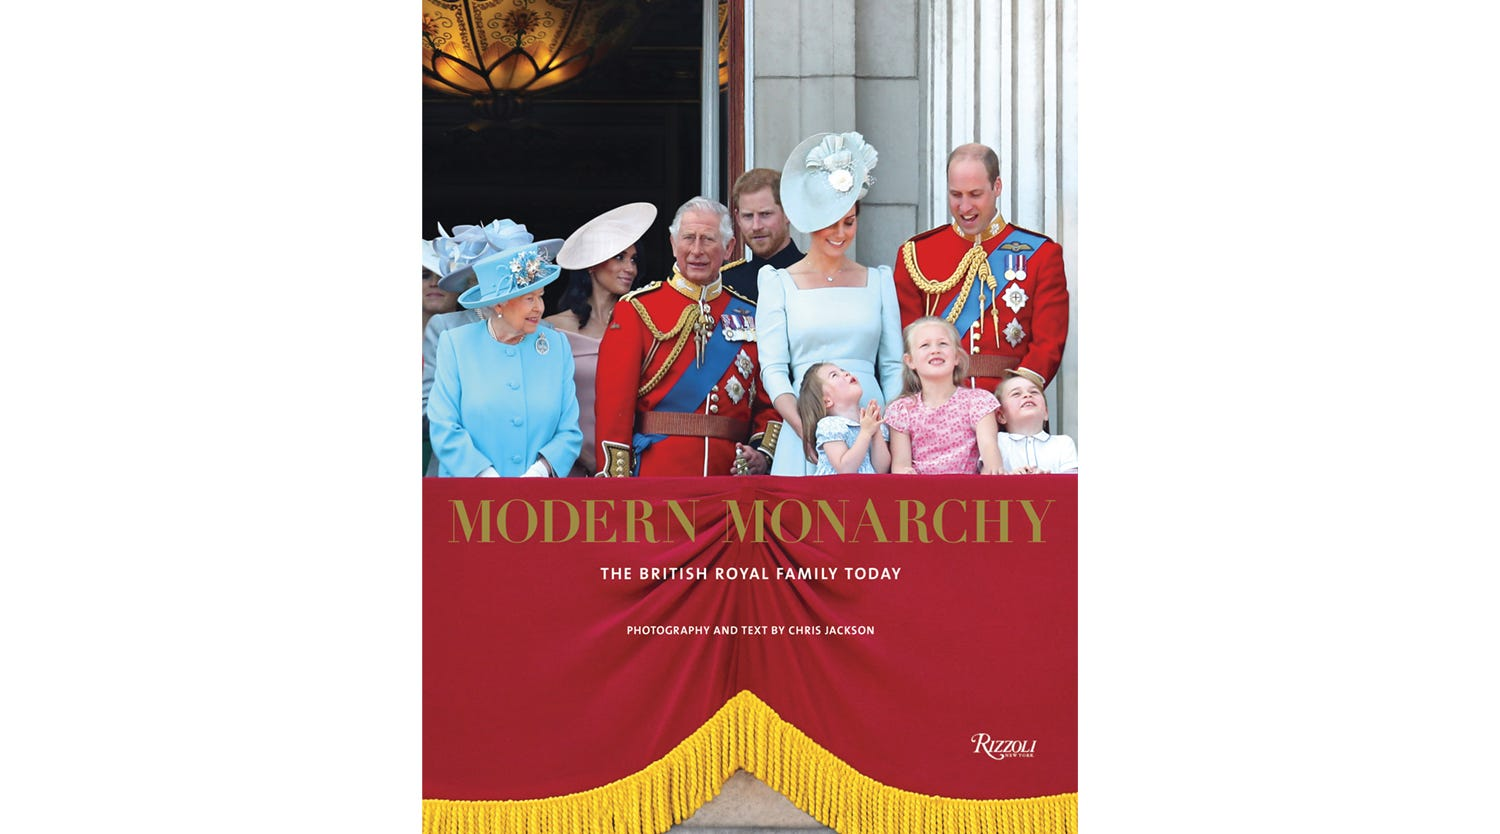 Modern Monarchy: The British Royal Family Today, by Chris Jackson